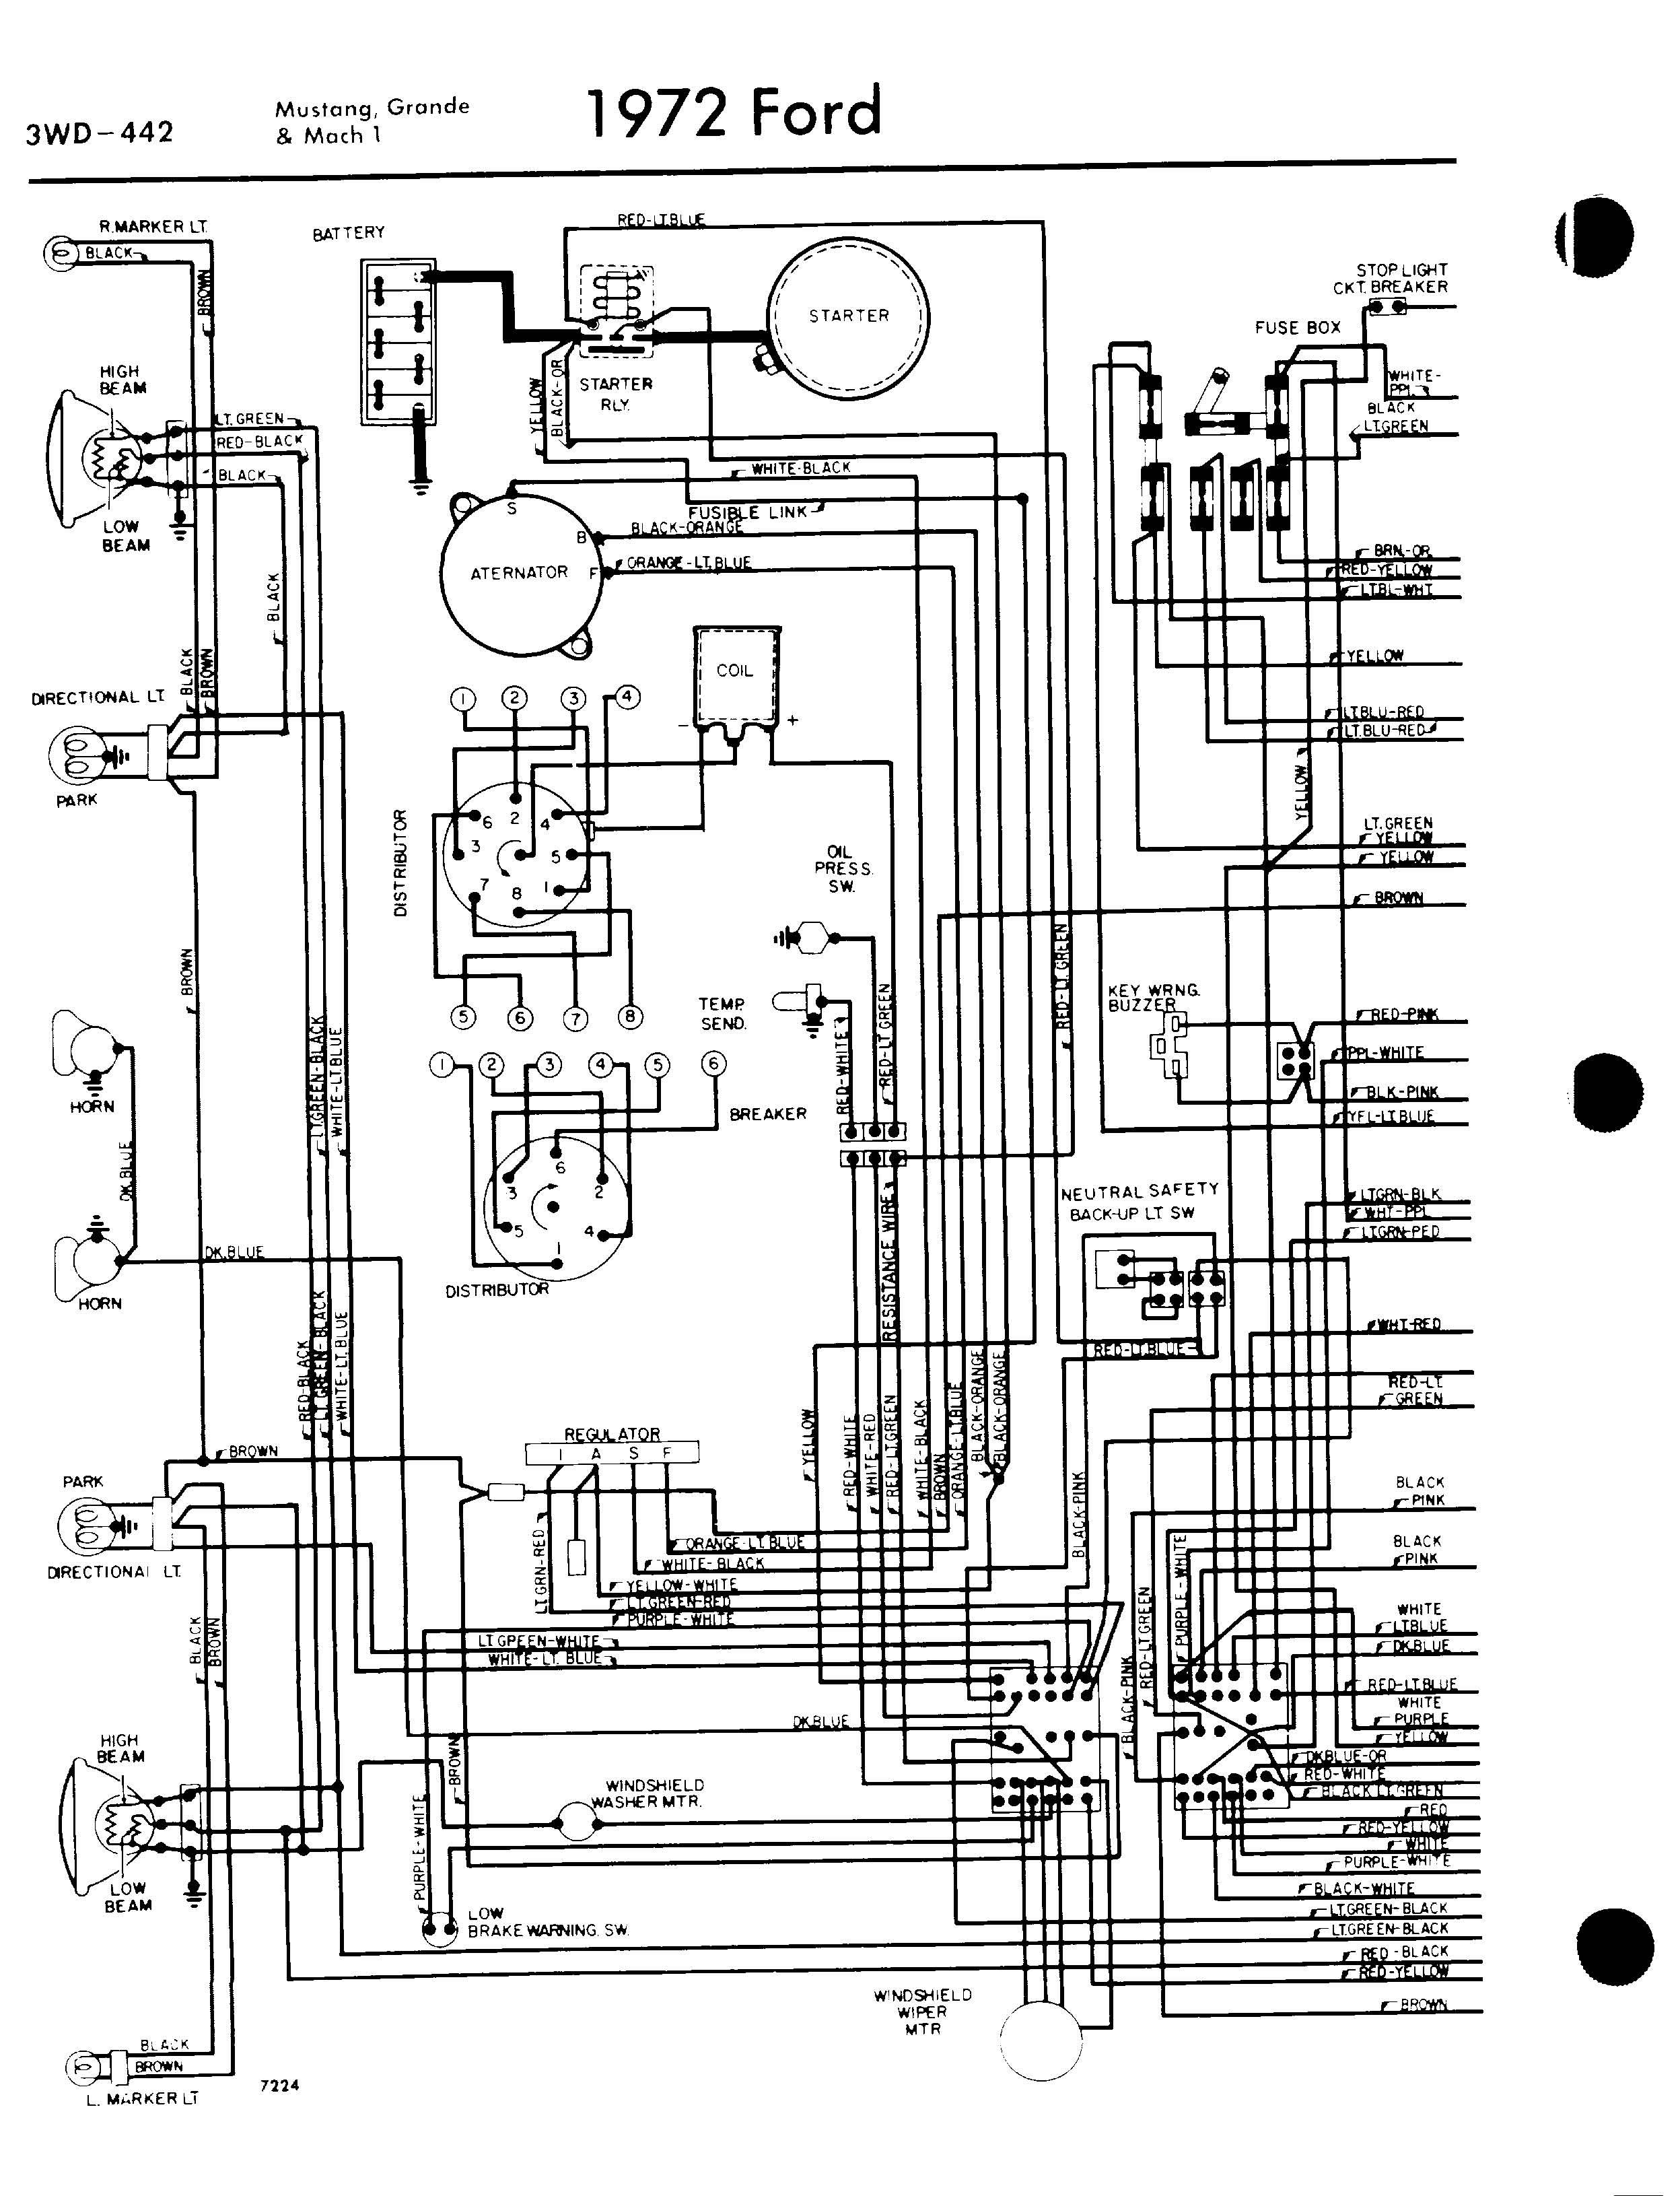 Wiring Diagram View Diagram 1970 Mustang Wiring Diagram 1970 Mustang